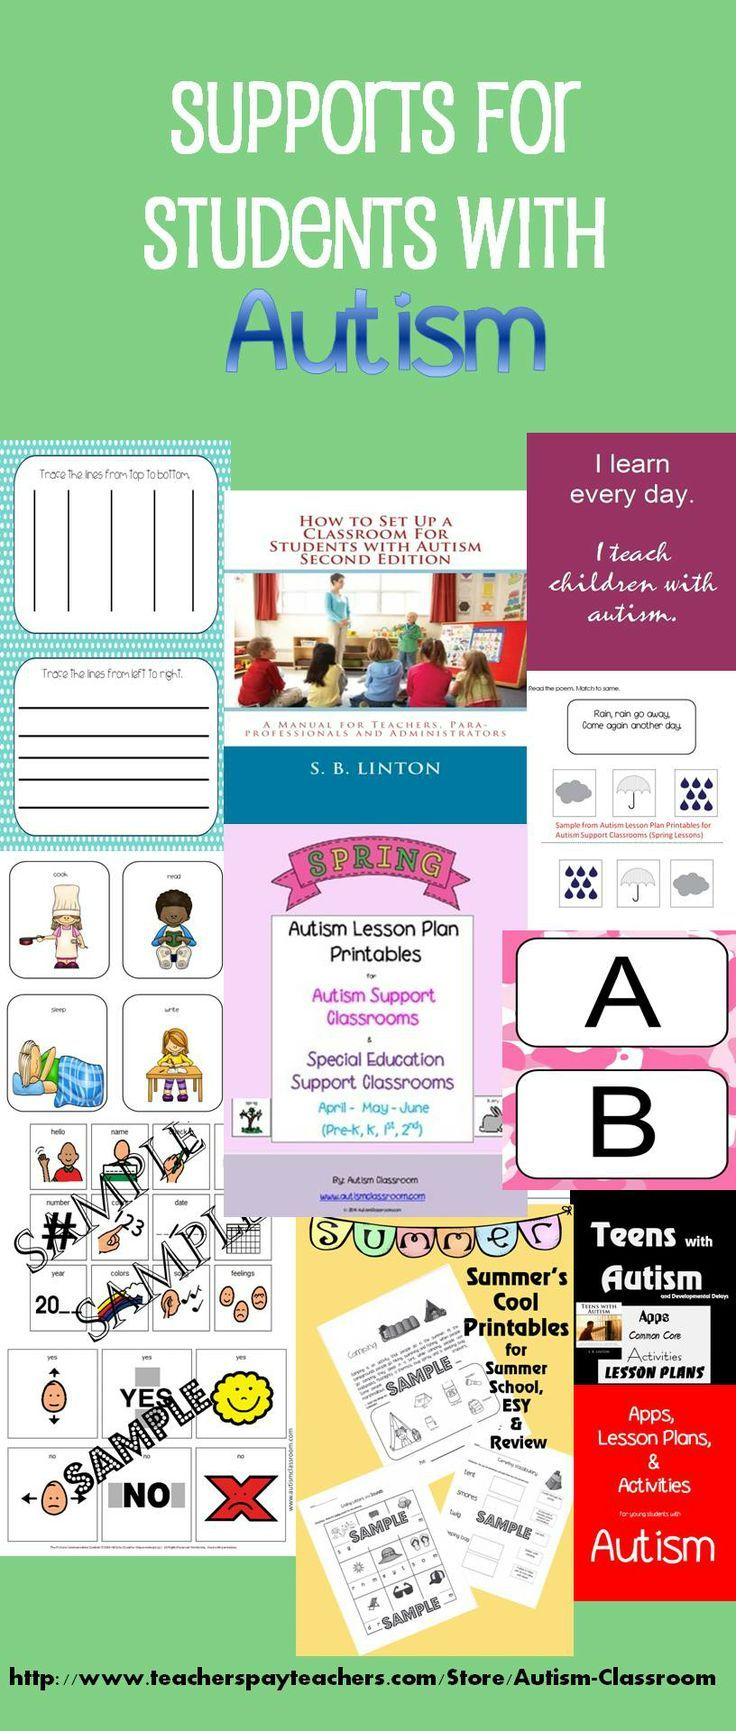 Pre-made lessons and supplies. I like to be productive and I like to save time while doing it. All the items needed to get a self-contained special education classroom up and running or keep it up and running. #autism #lessons #lessonplans